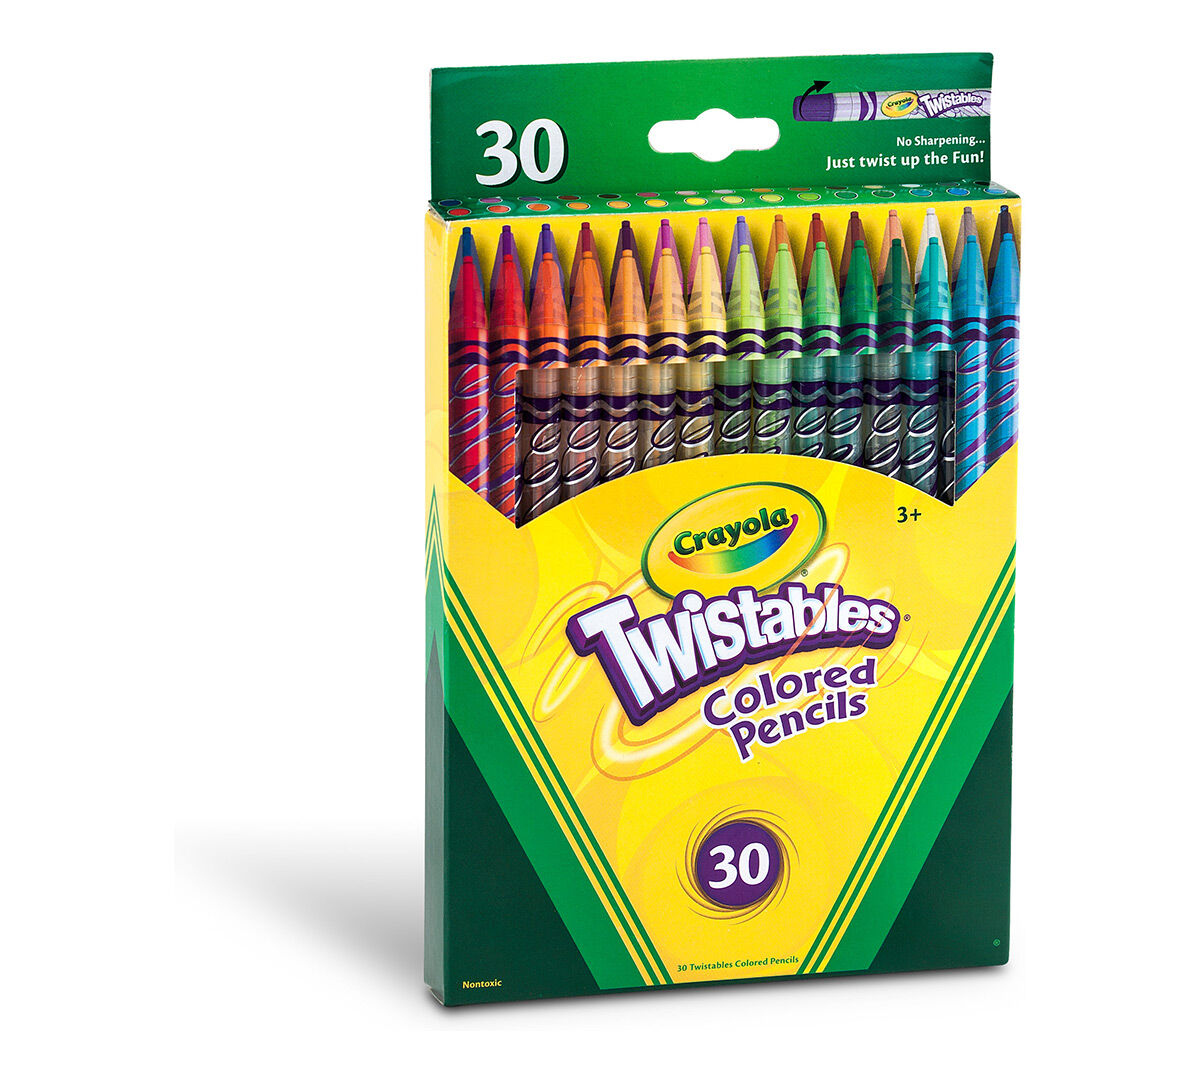 Crayola Twistables Colored Pencils, Always Sharp, Art ...